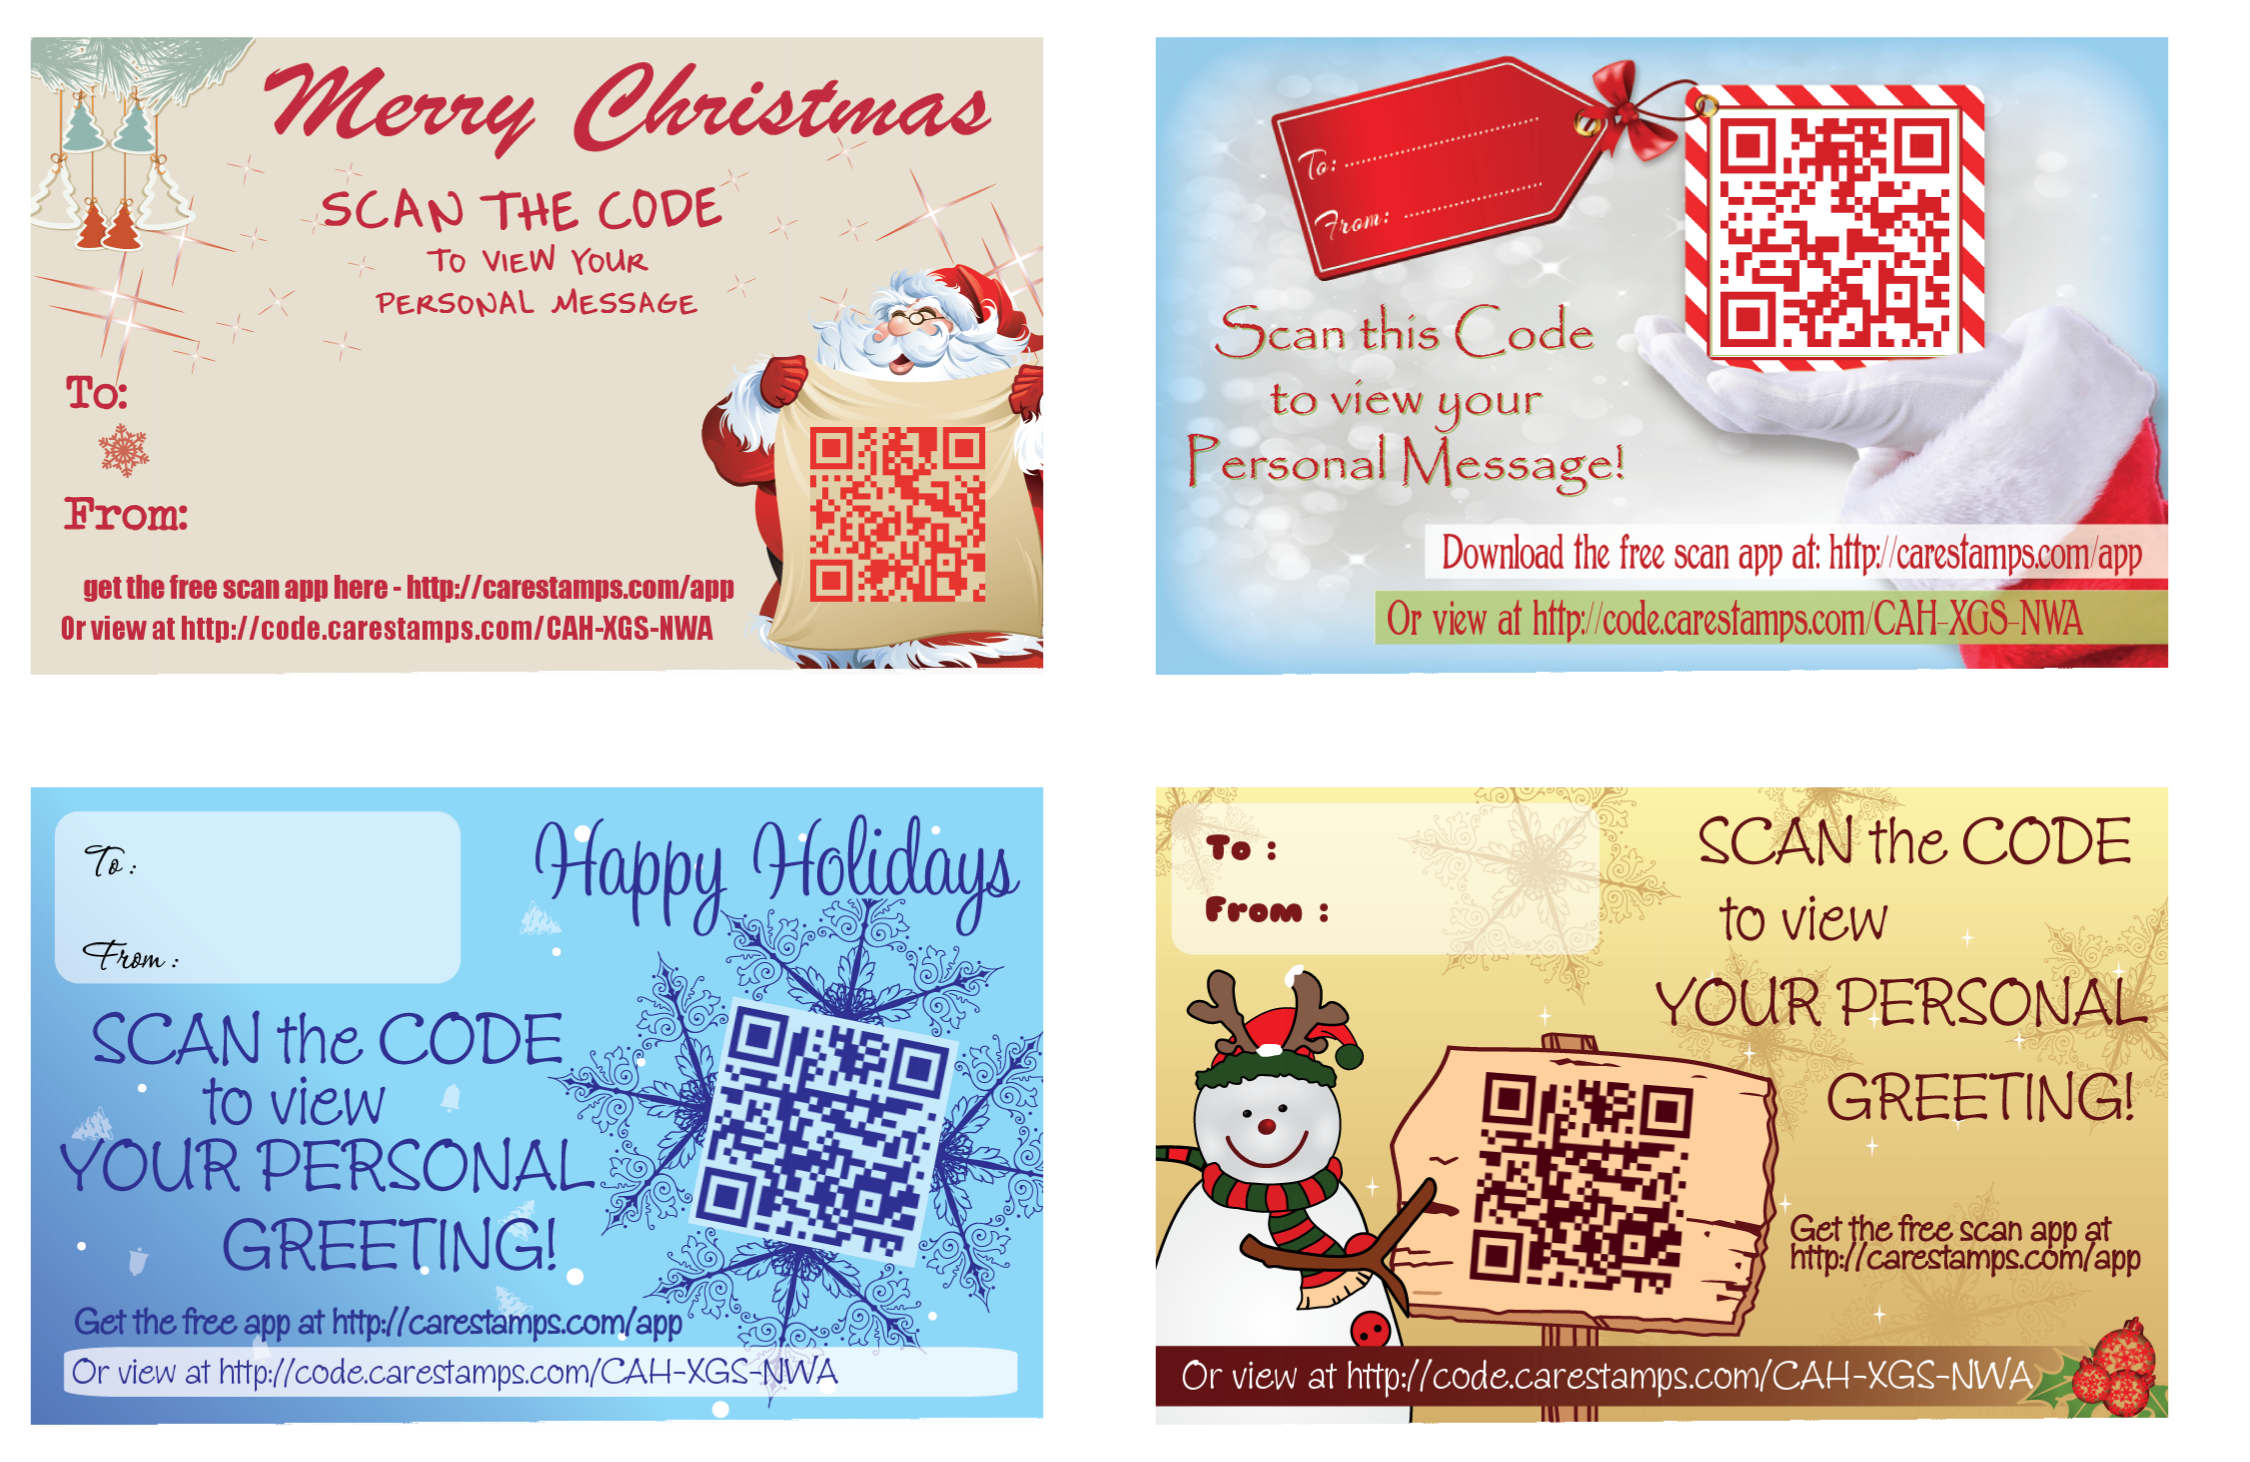 Gift Tags Greeting Cards Revolutionized With Technology By Jesse